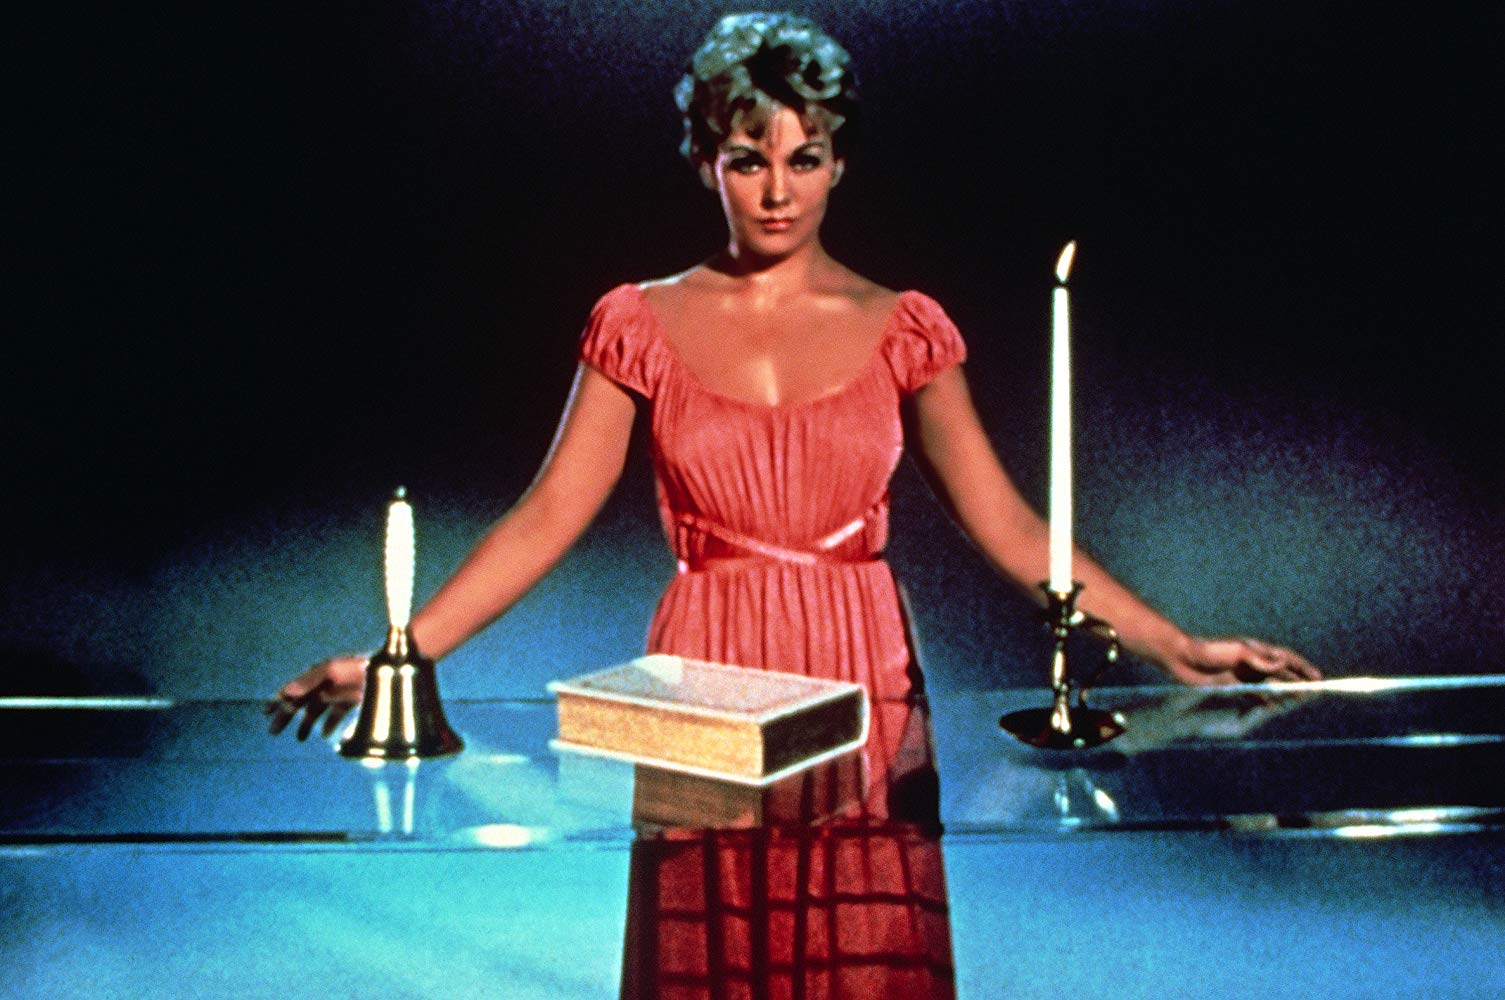 Kim Novak as witch Gillian Holroyd in Bell Book and Candle (1958)